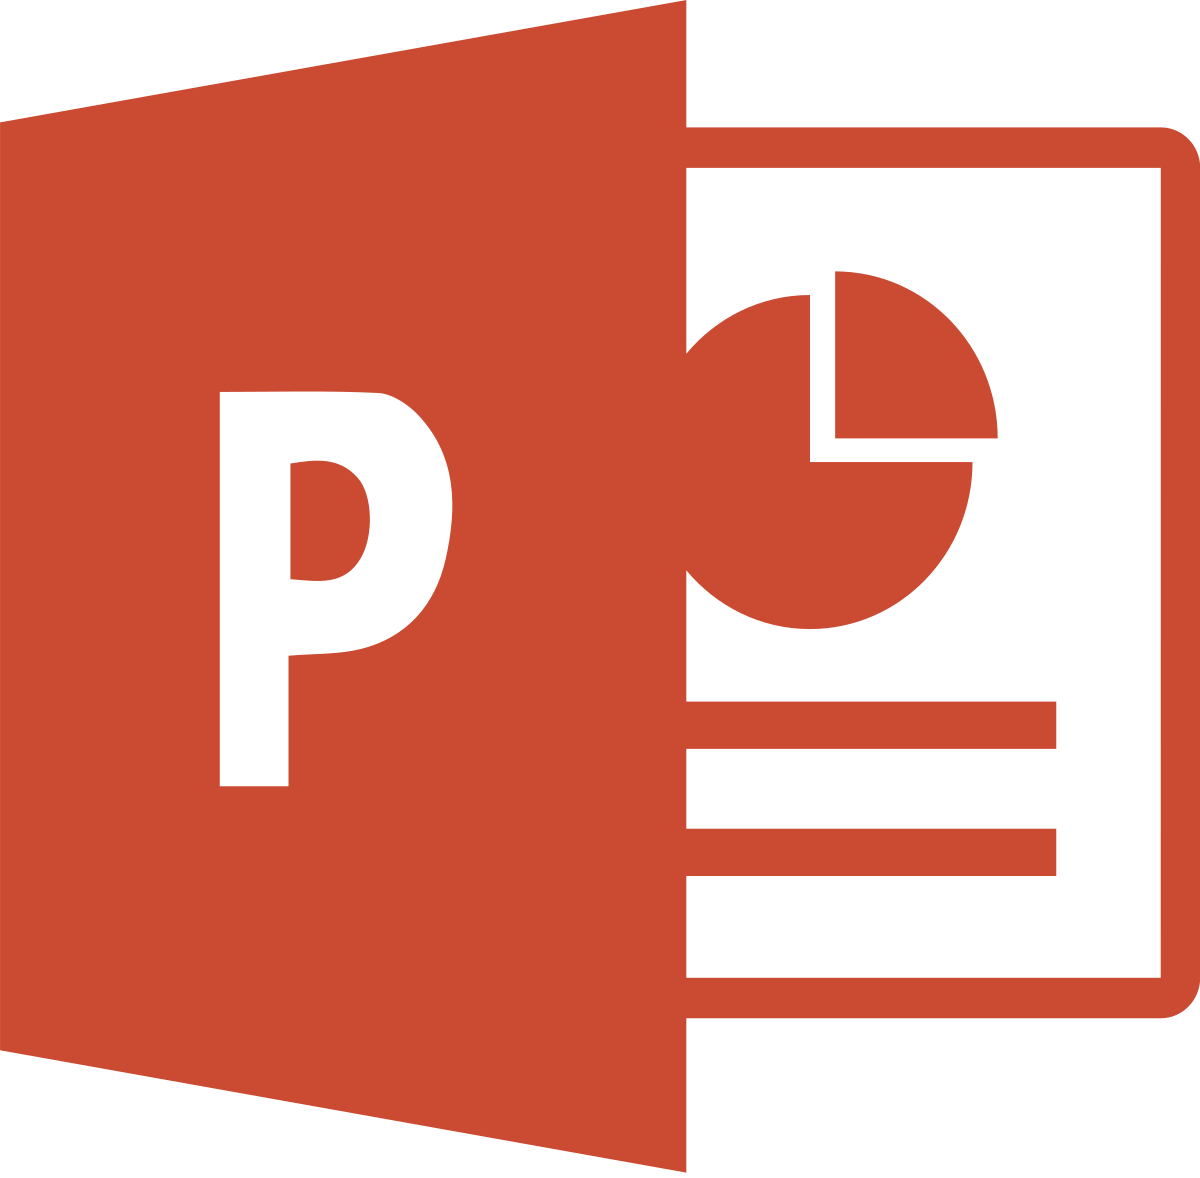 Microsoft powerpoint wikipedia . Statistics clipart briefing